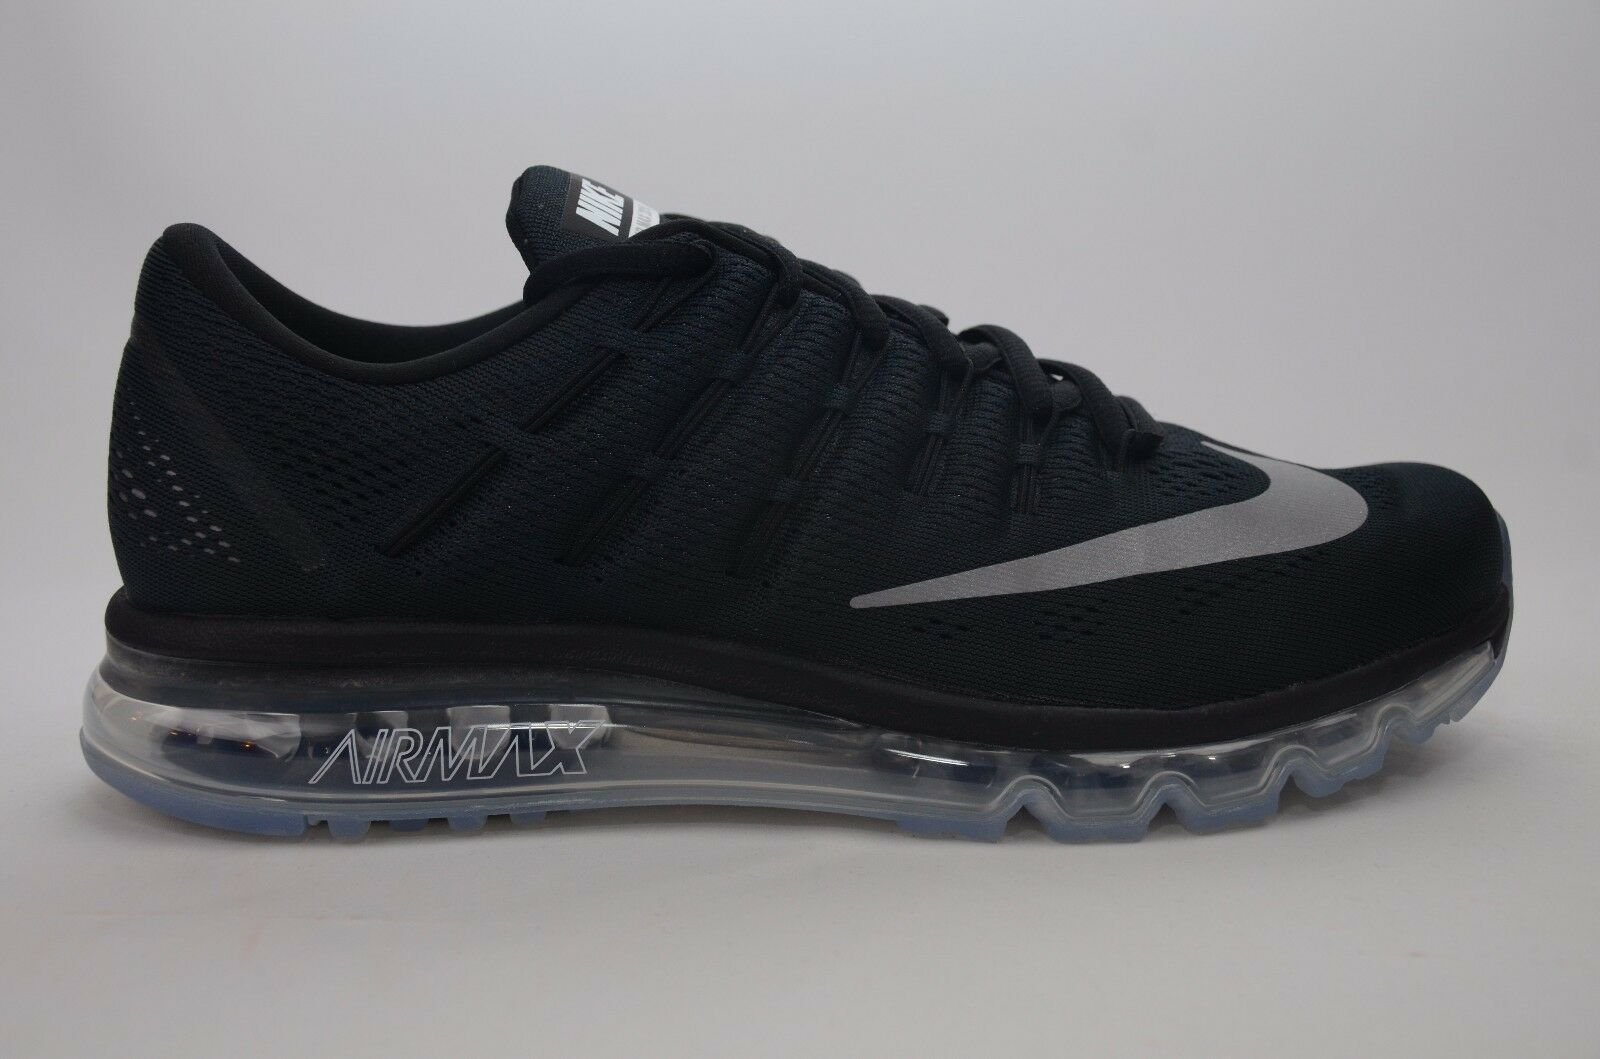 Nike - Nike Air Max 2016 Black/White Men's Running Size 8-13 New in Box 806771 001